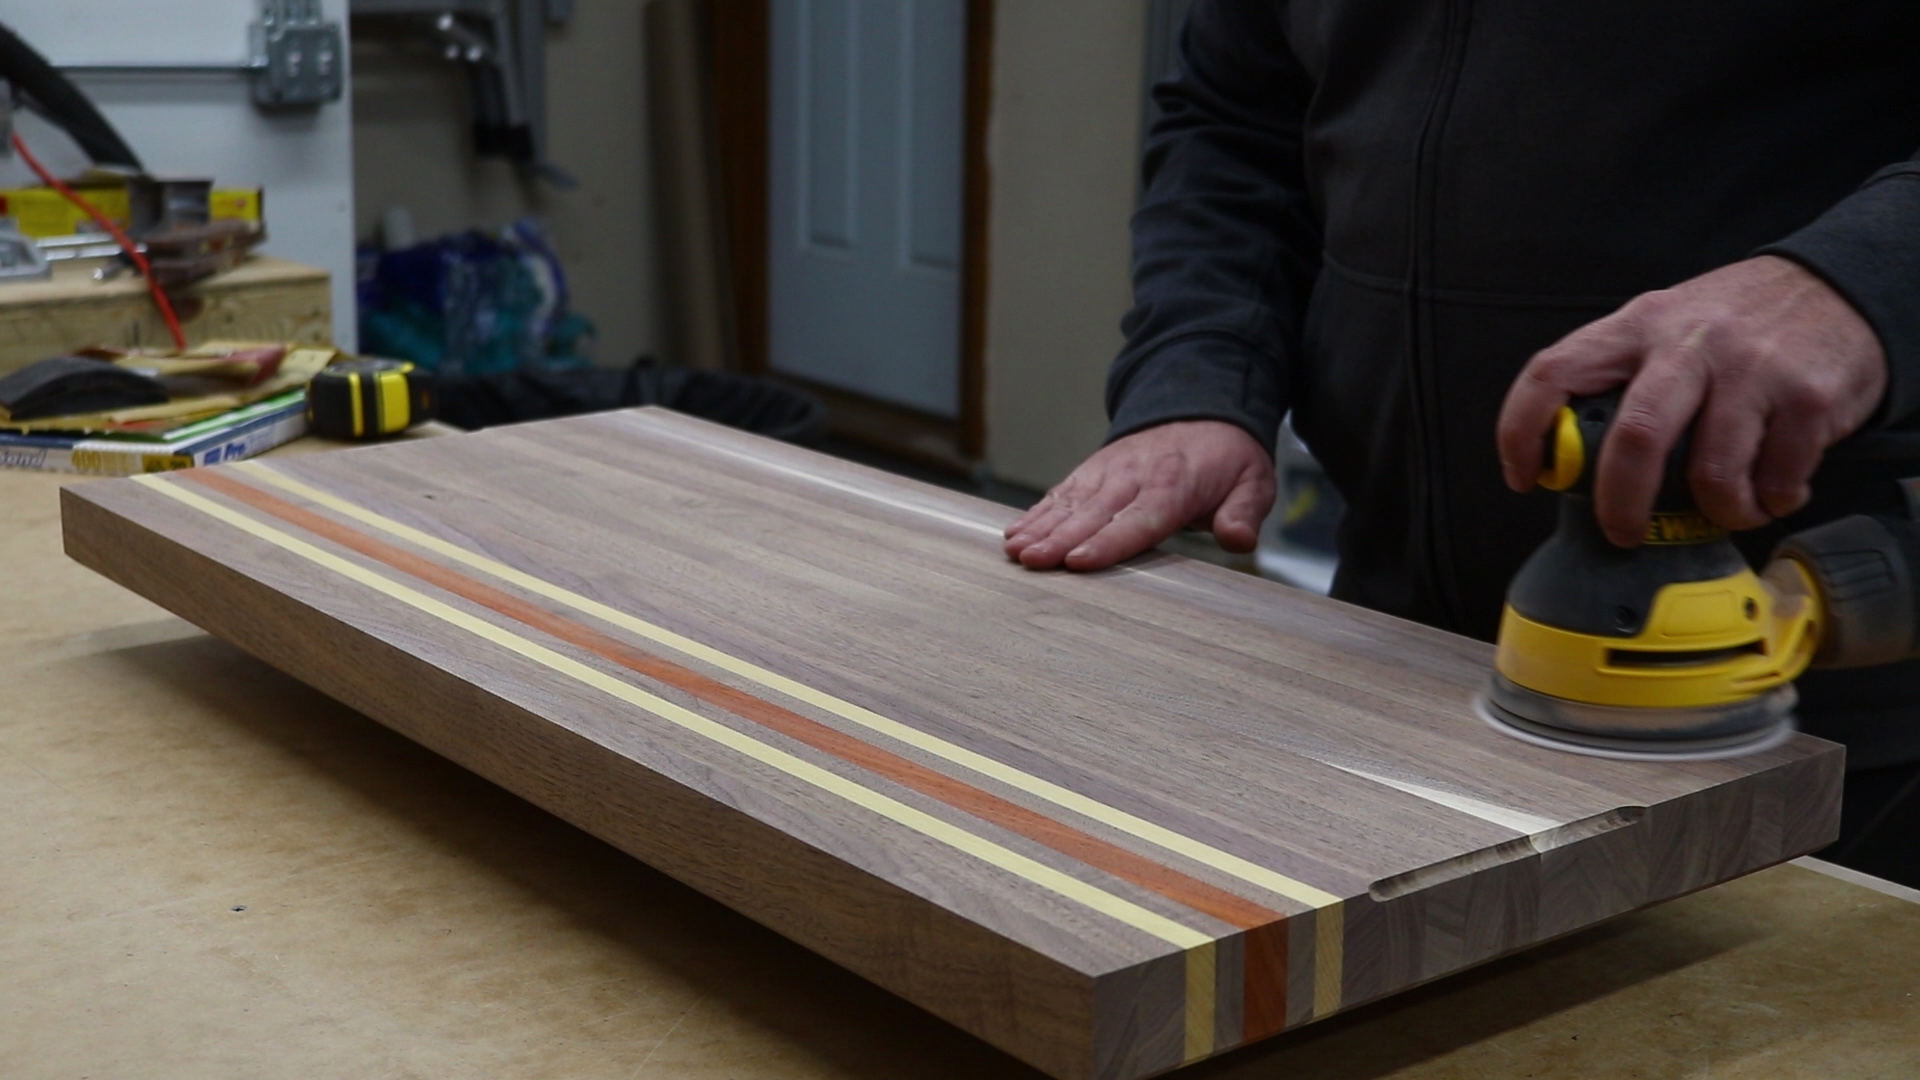 Lightly sanding the board to knock down any grain